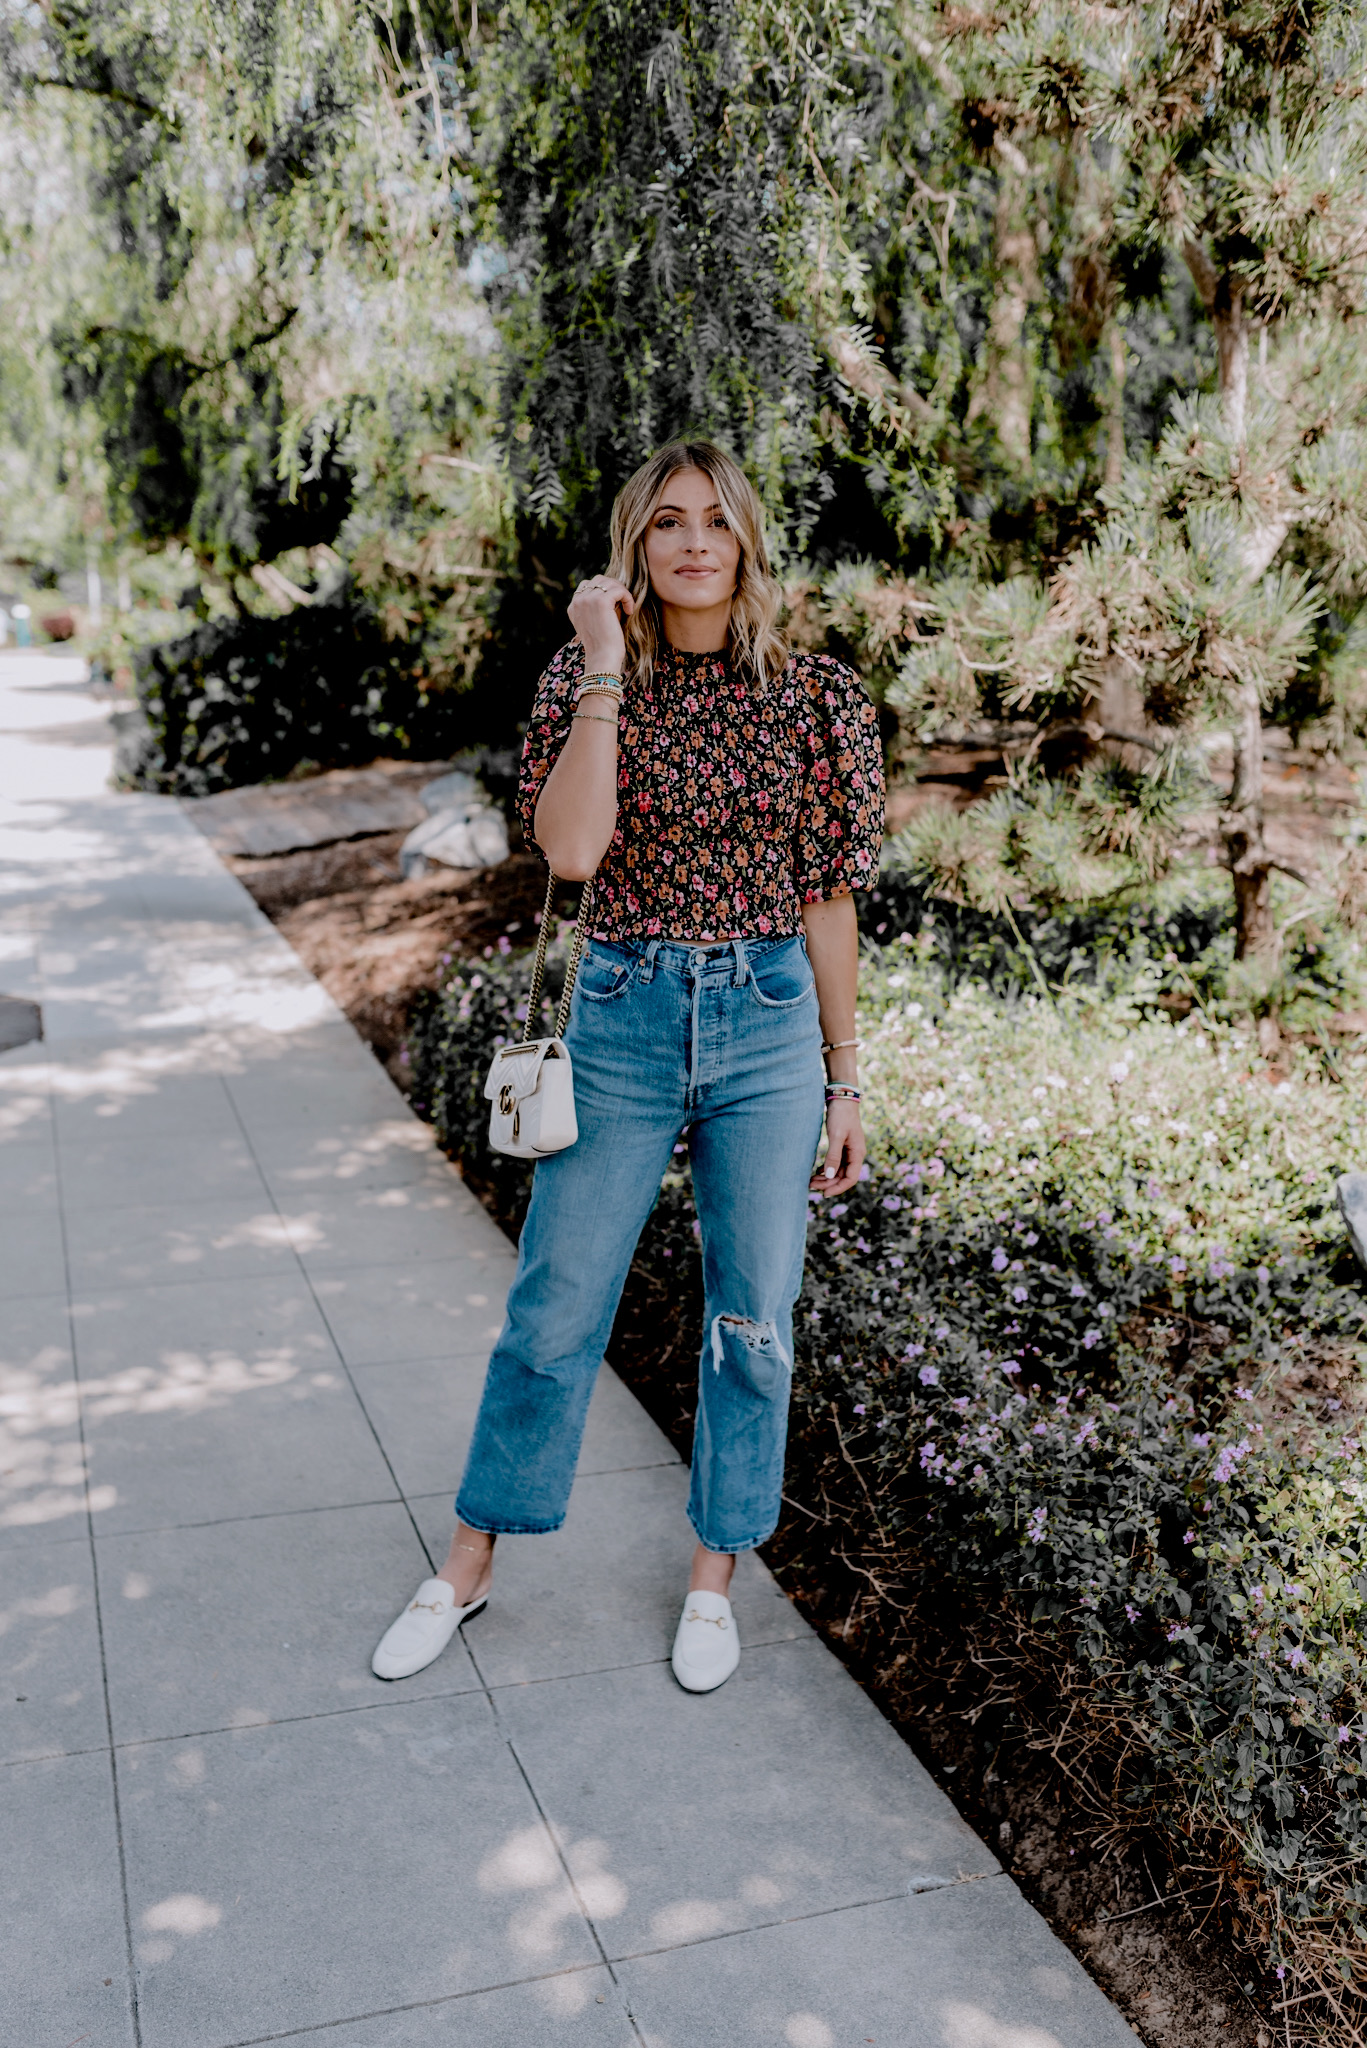 Labor Day Sales by popular San Diego fashion blog, Navy Grace: image of a woman wearing a H&M Puff-sleeved Smocked Blouse, Urban Outiftters Levi's Ribcage Straight Jean, Nordstrom Princetown Loafer Mule GUCCI, and Nordstrom Small Matelassé Leather Shoulder Bag GUCCI.